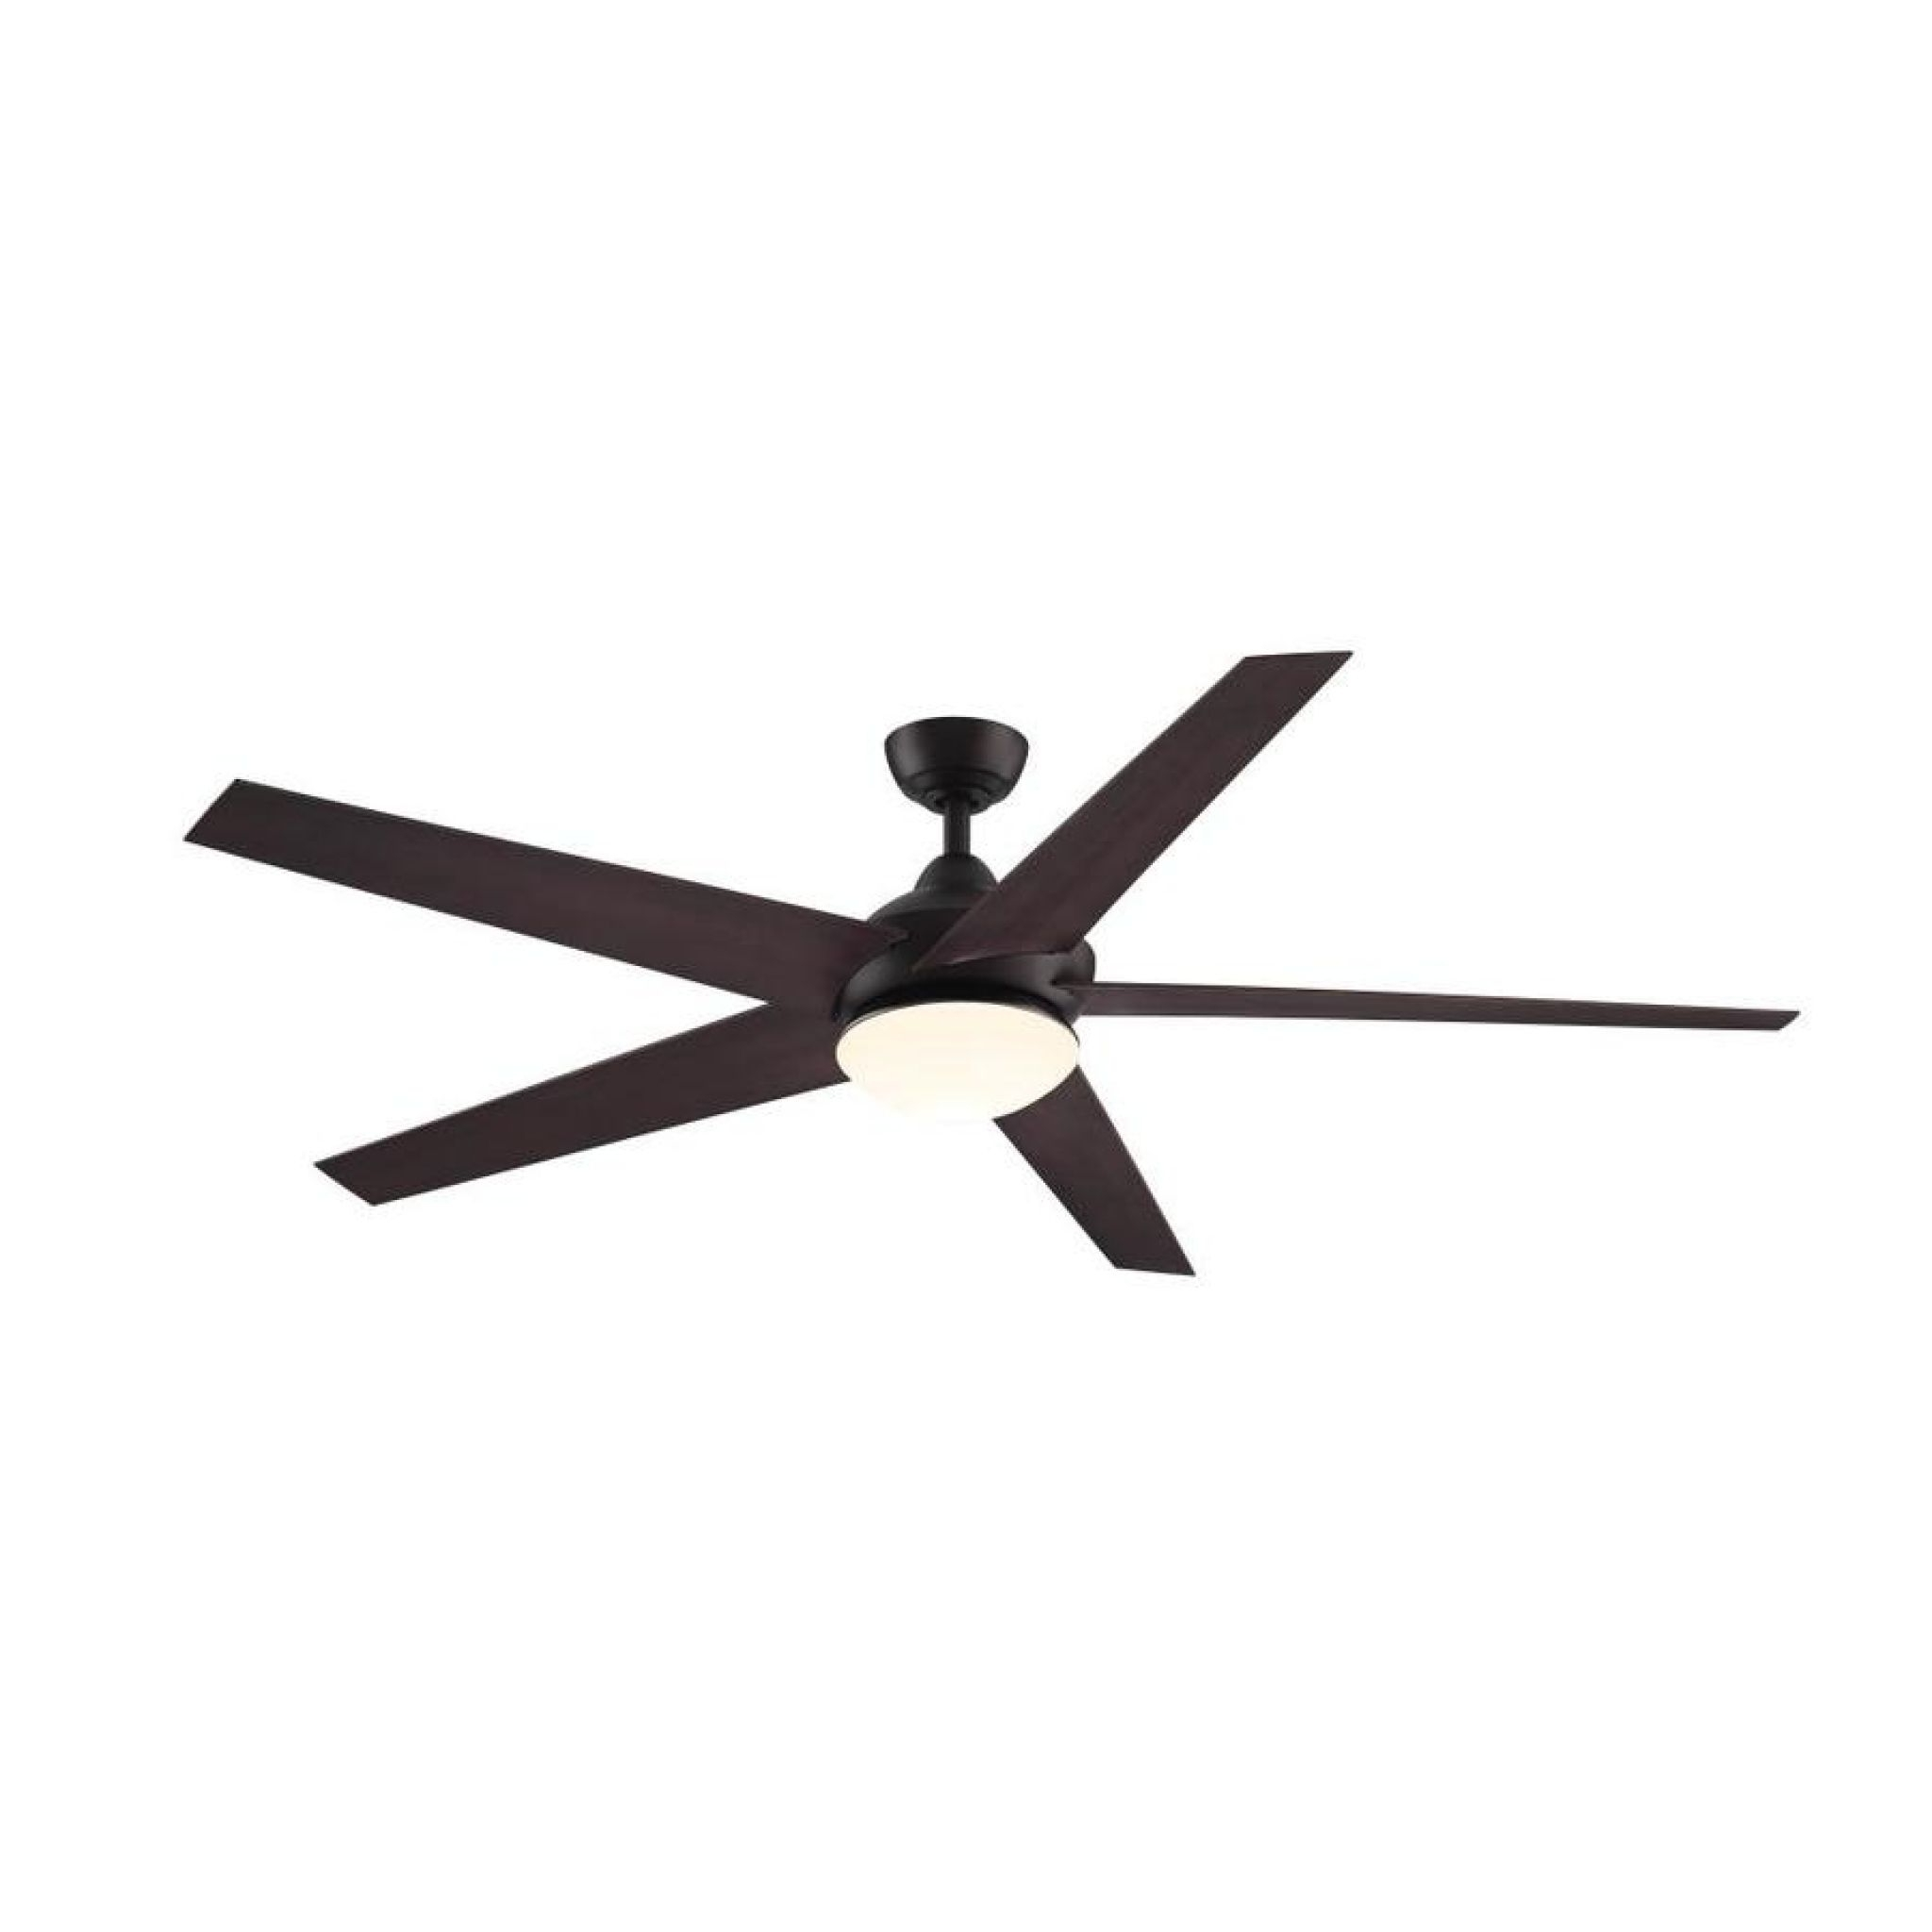 2018 Indoor Outdoor Ceiling Fans With Lights And Remote Pertaining To Outdoor Ceiling Fans With Lights And Remote – Interior Paint Color (View 1 of 20)